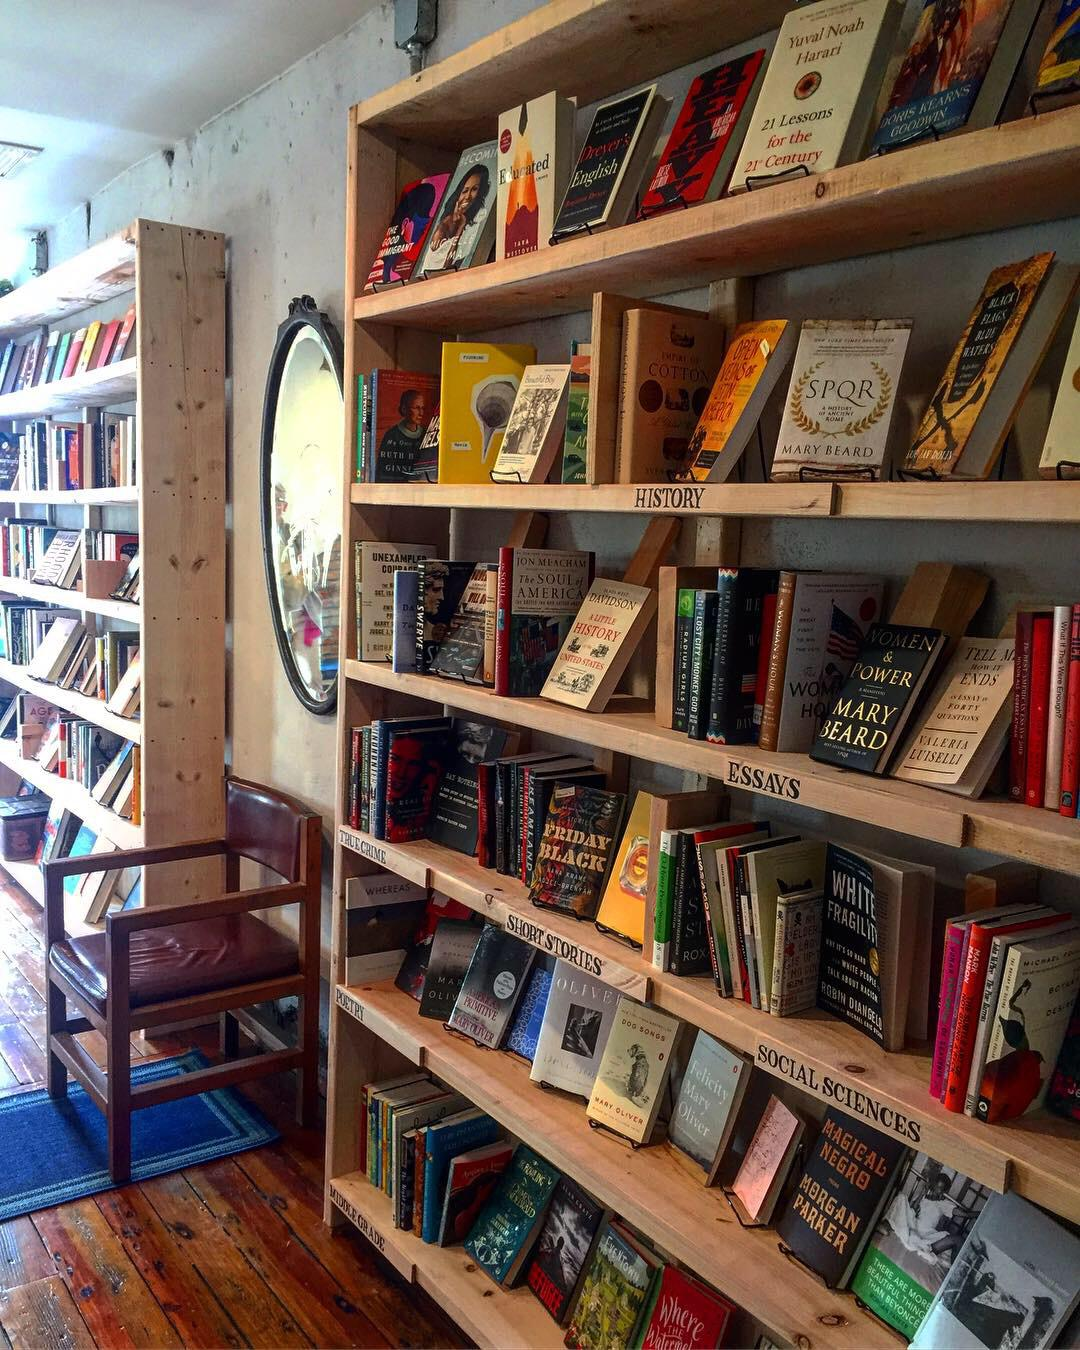 We opened a bookstore in East Kensington - We'll be your local purveyor of curated fiction, local lit, and children's/middle grade books. Come visit!